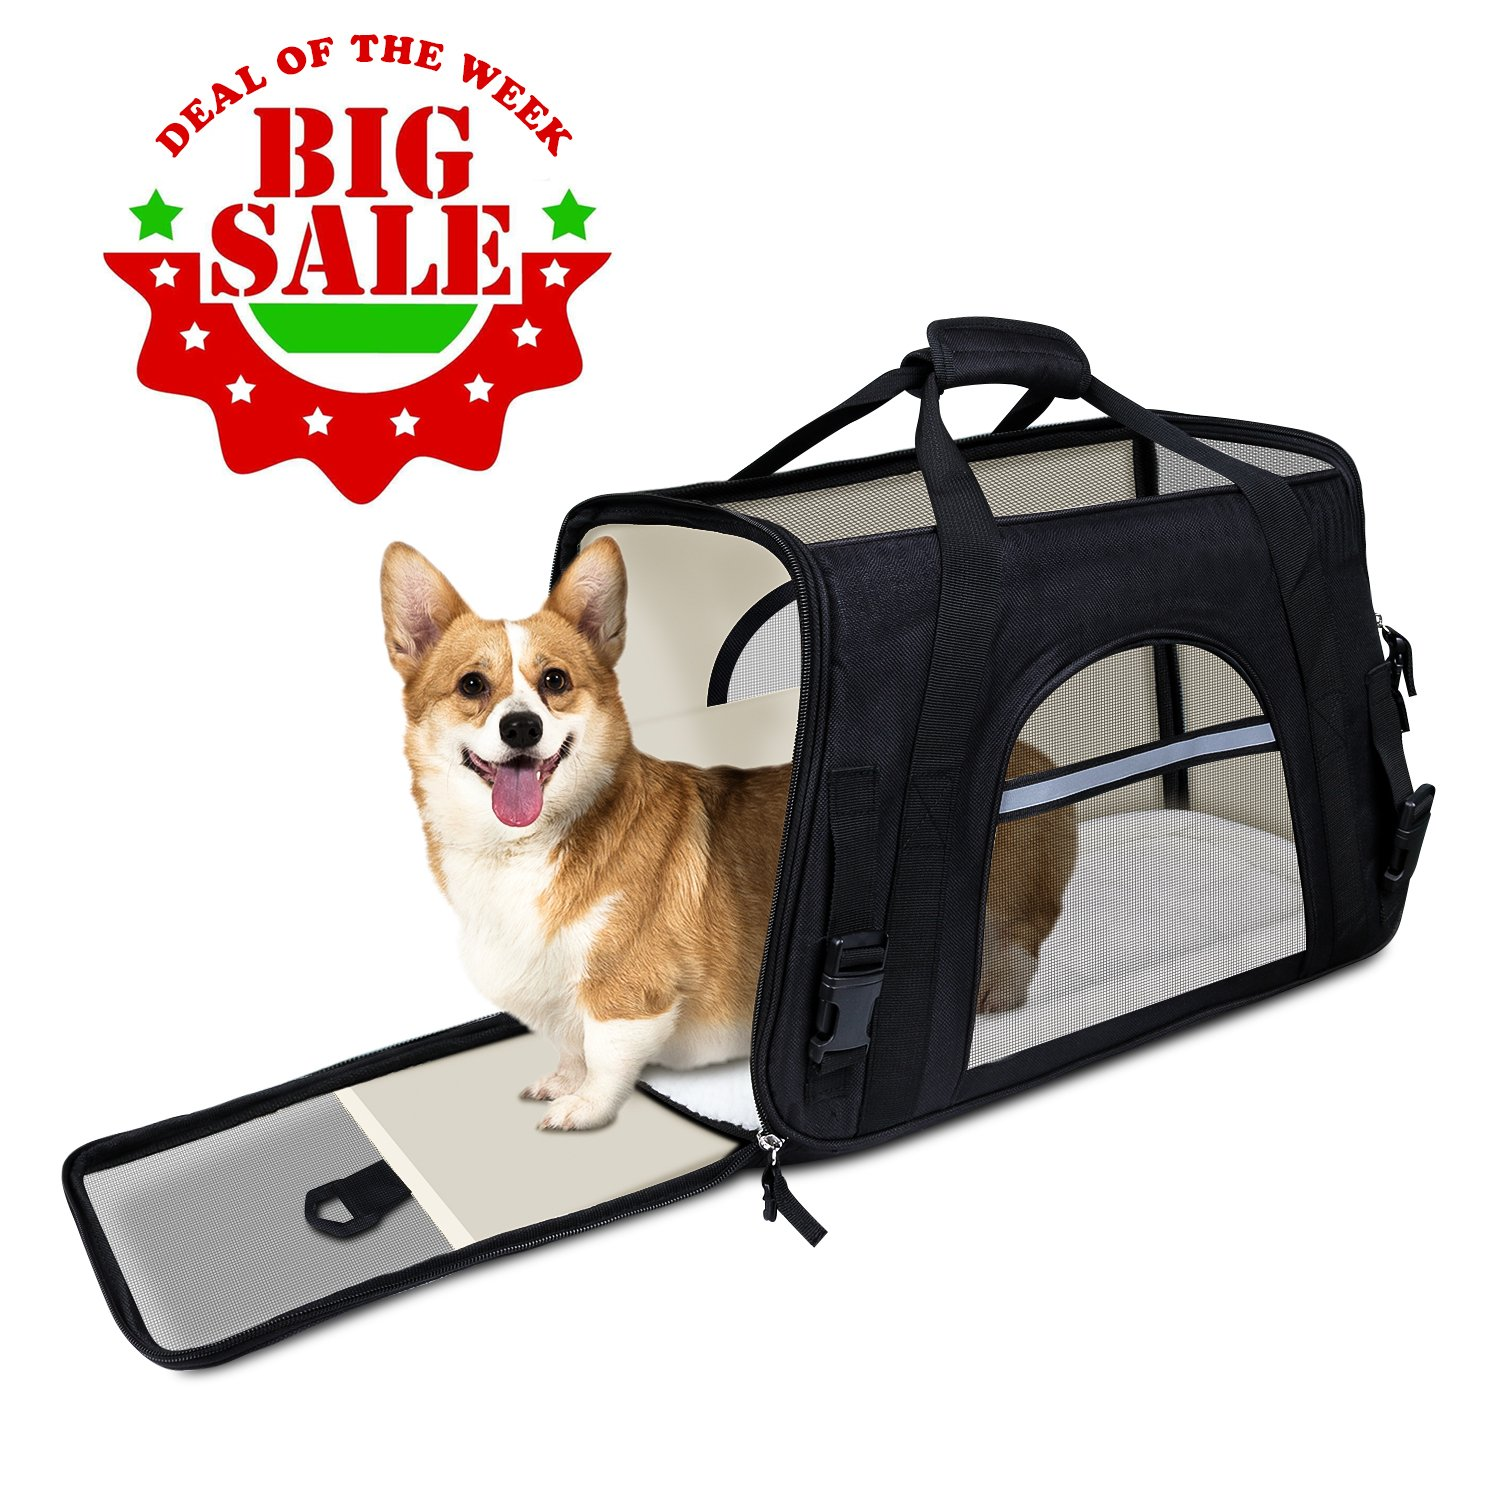 GDPETS Pet Carrier, Airline Approved Cat Carrier Bag Small& Medium Sized Animal, Soft-Sided Pet Travel Tote Fleece Bed, Portable Dog Carriers Hold Up to (10lbs) Fit Under Seats